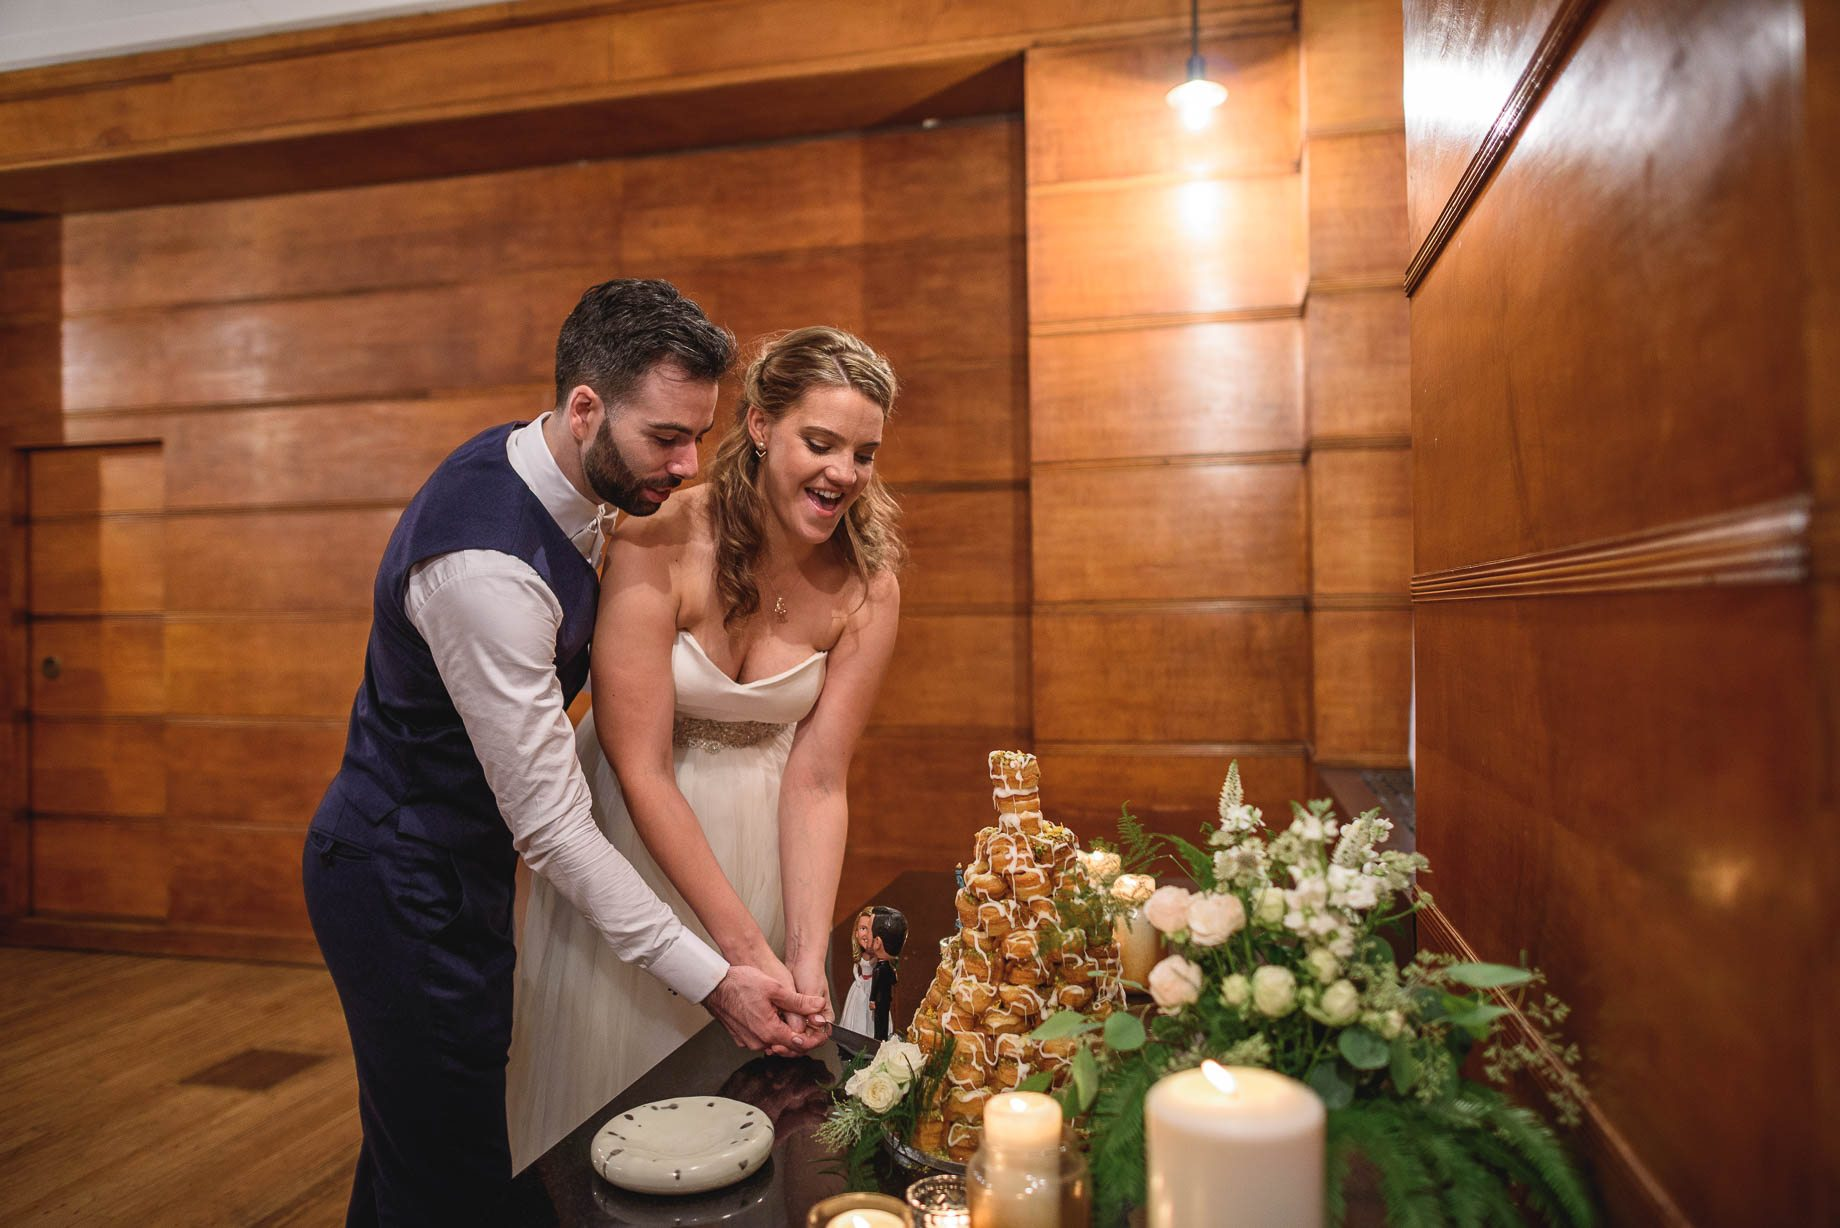 London Wedding Photography - Guy Collier Photography - LJ + Russell (145 of 155)